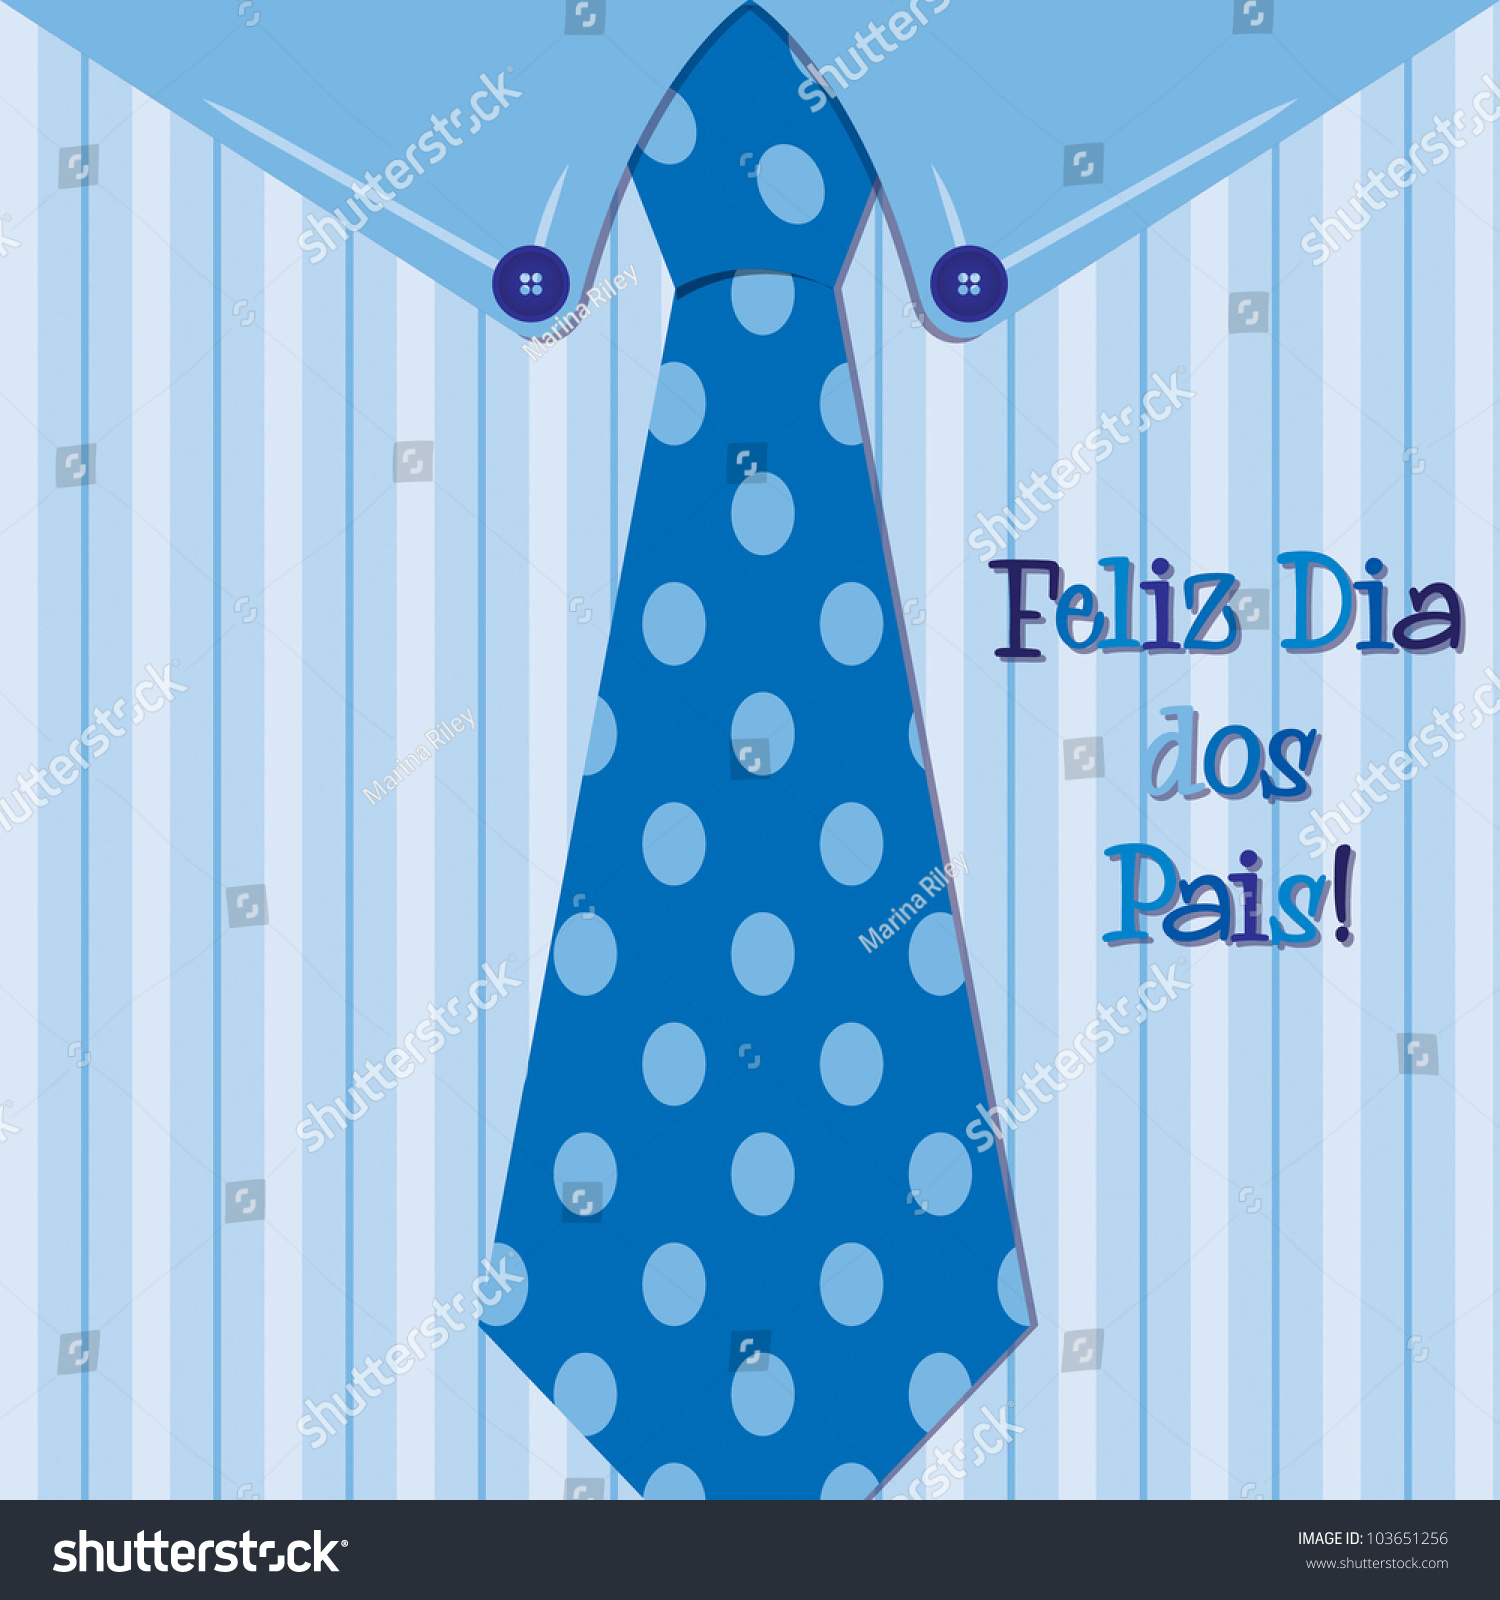 Shirt design card - Bright Shirt And Tie Portuguese Happy Father S Day Neck Tie Card In Vector Format